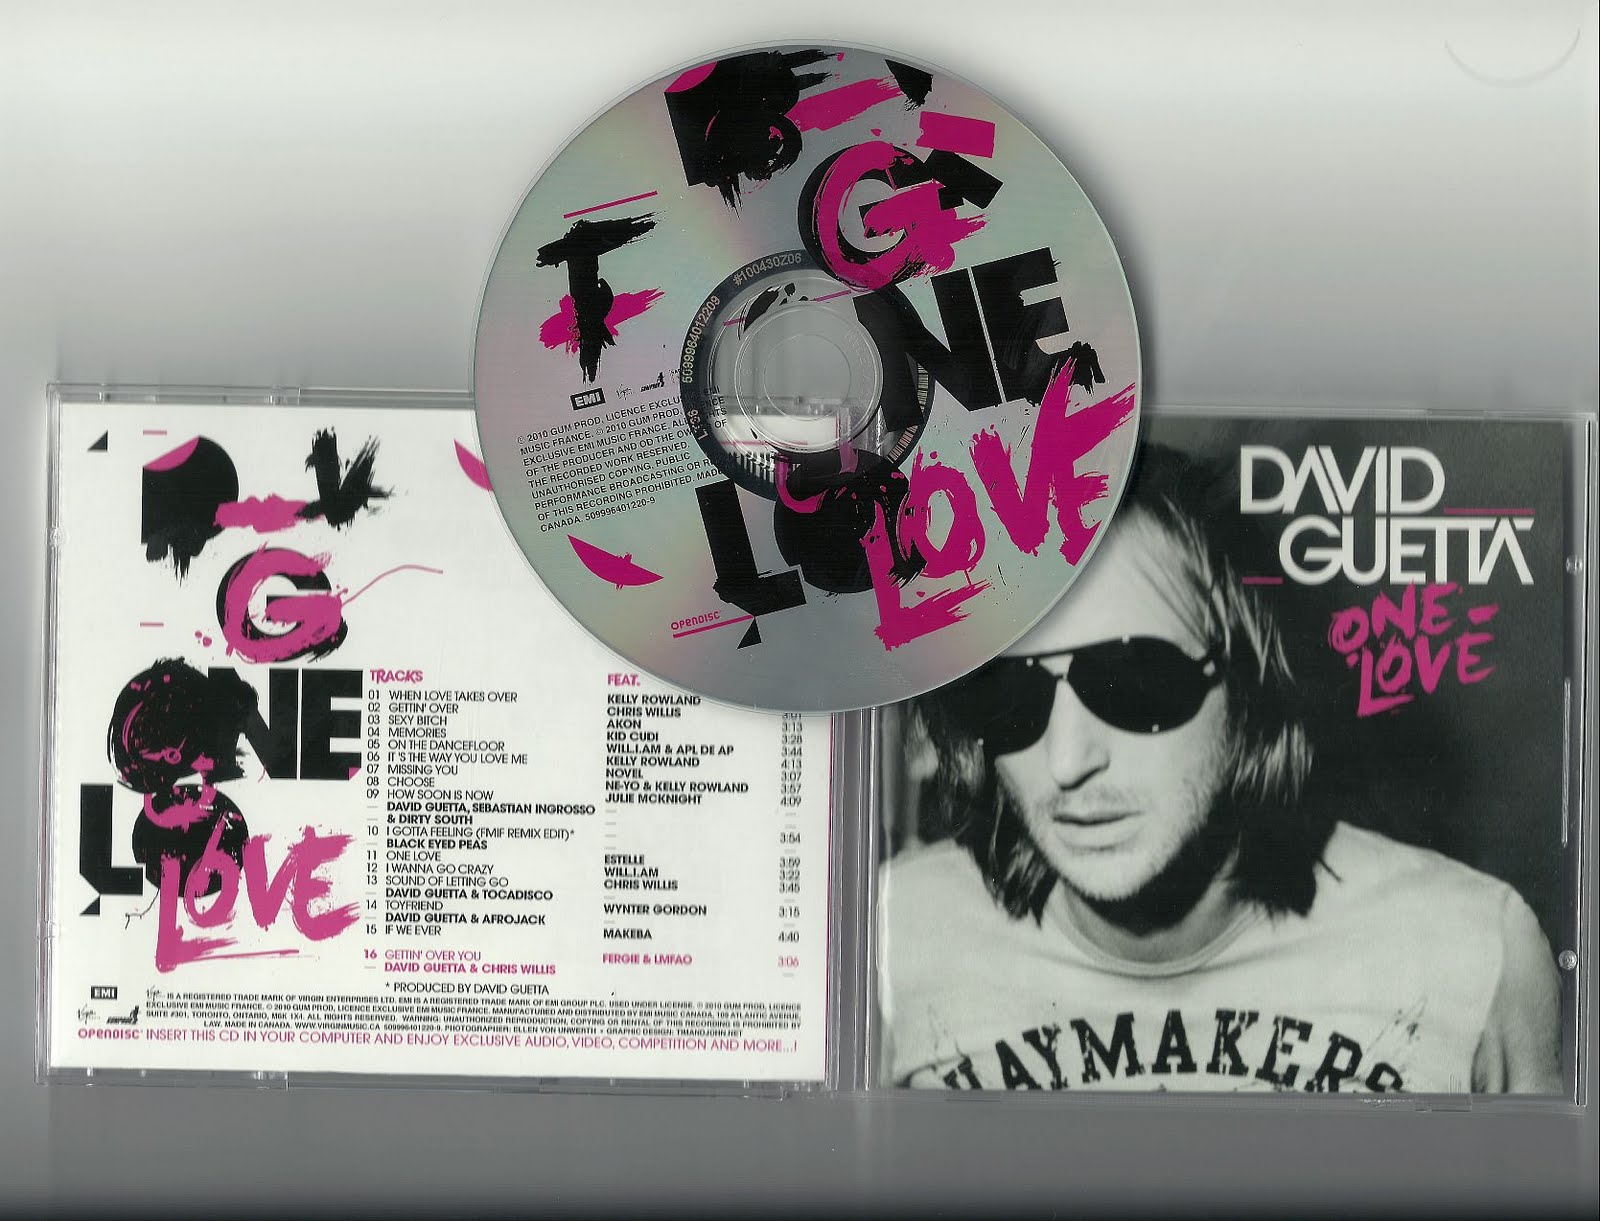 http://1.bp.blogspot.com/_bI5-8YnkkFA/TCwMsFbiQMI/AAAAAAAAEG0/40-0ezm4GDw/s1600/00-david_guetta-one_love-%28new_version%29-2010-scan.jpg